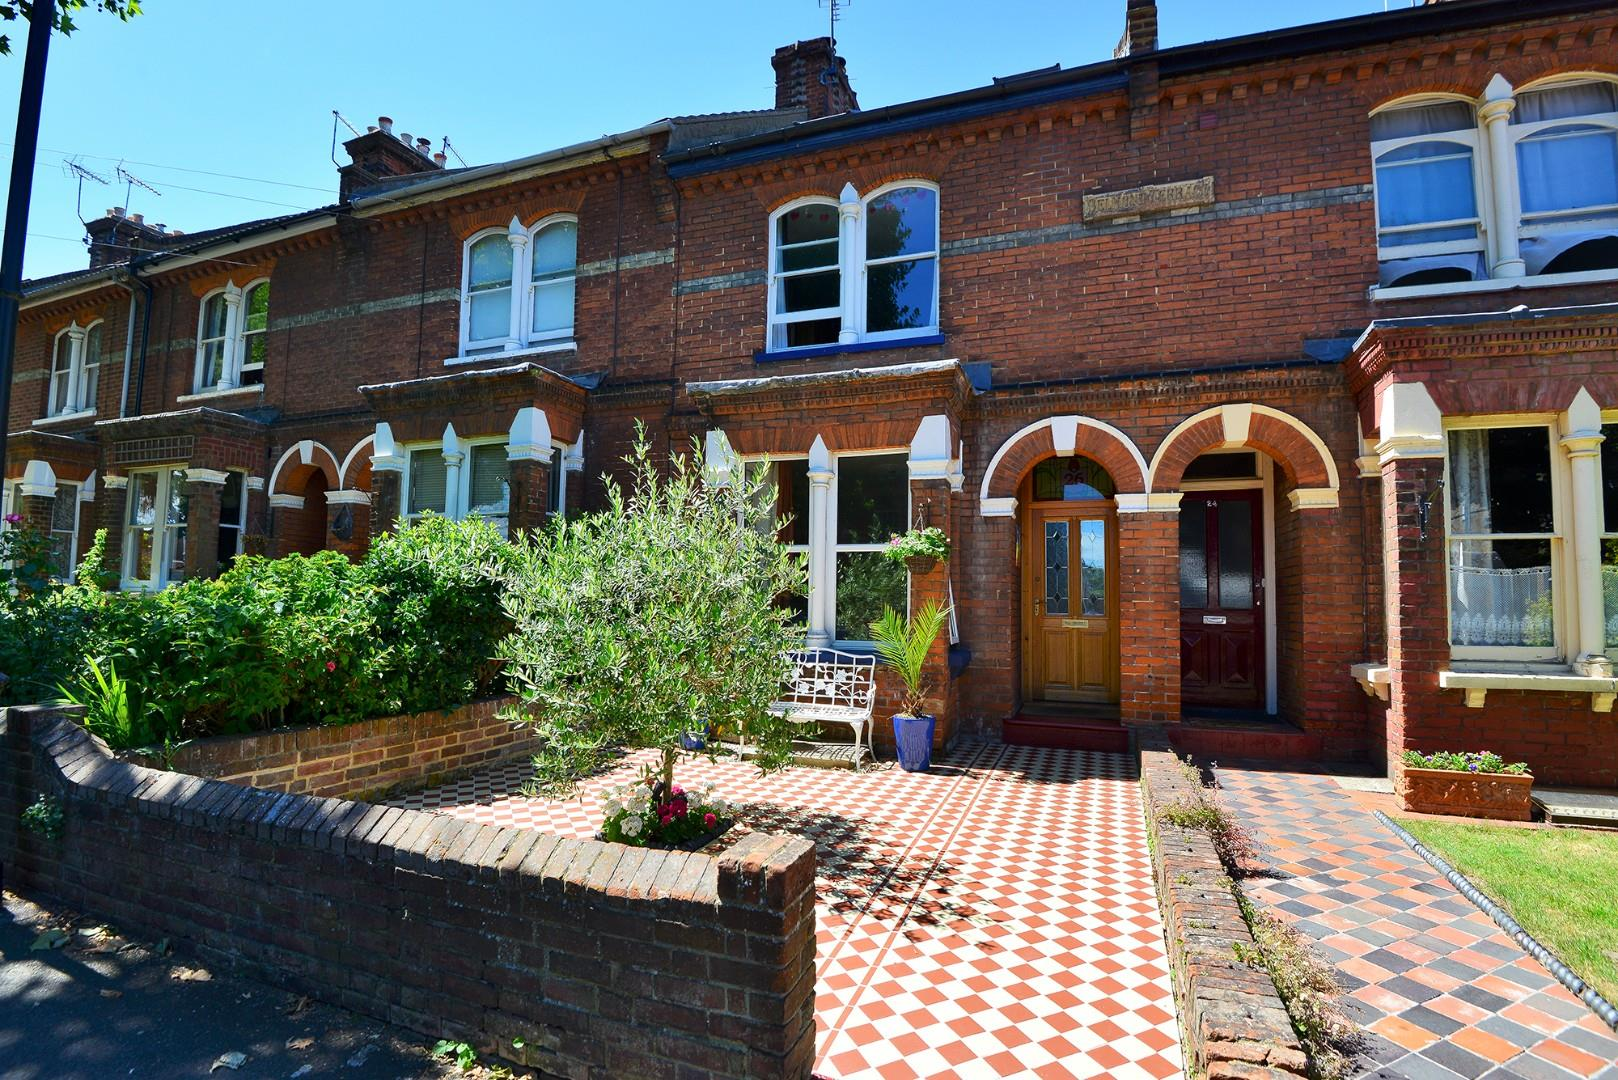 5 bedroom house for sale the mall faversham me me13 8sf